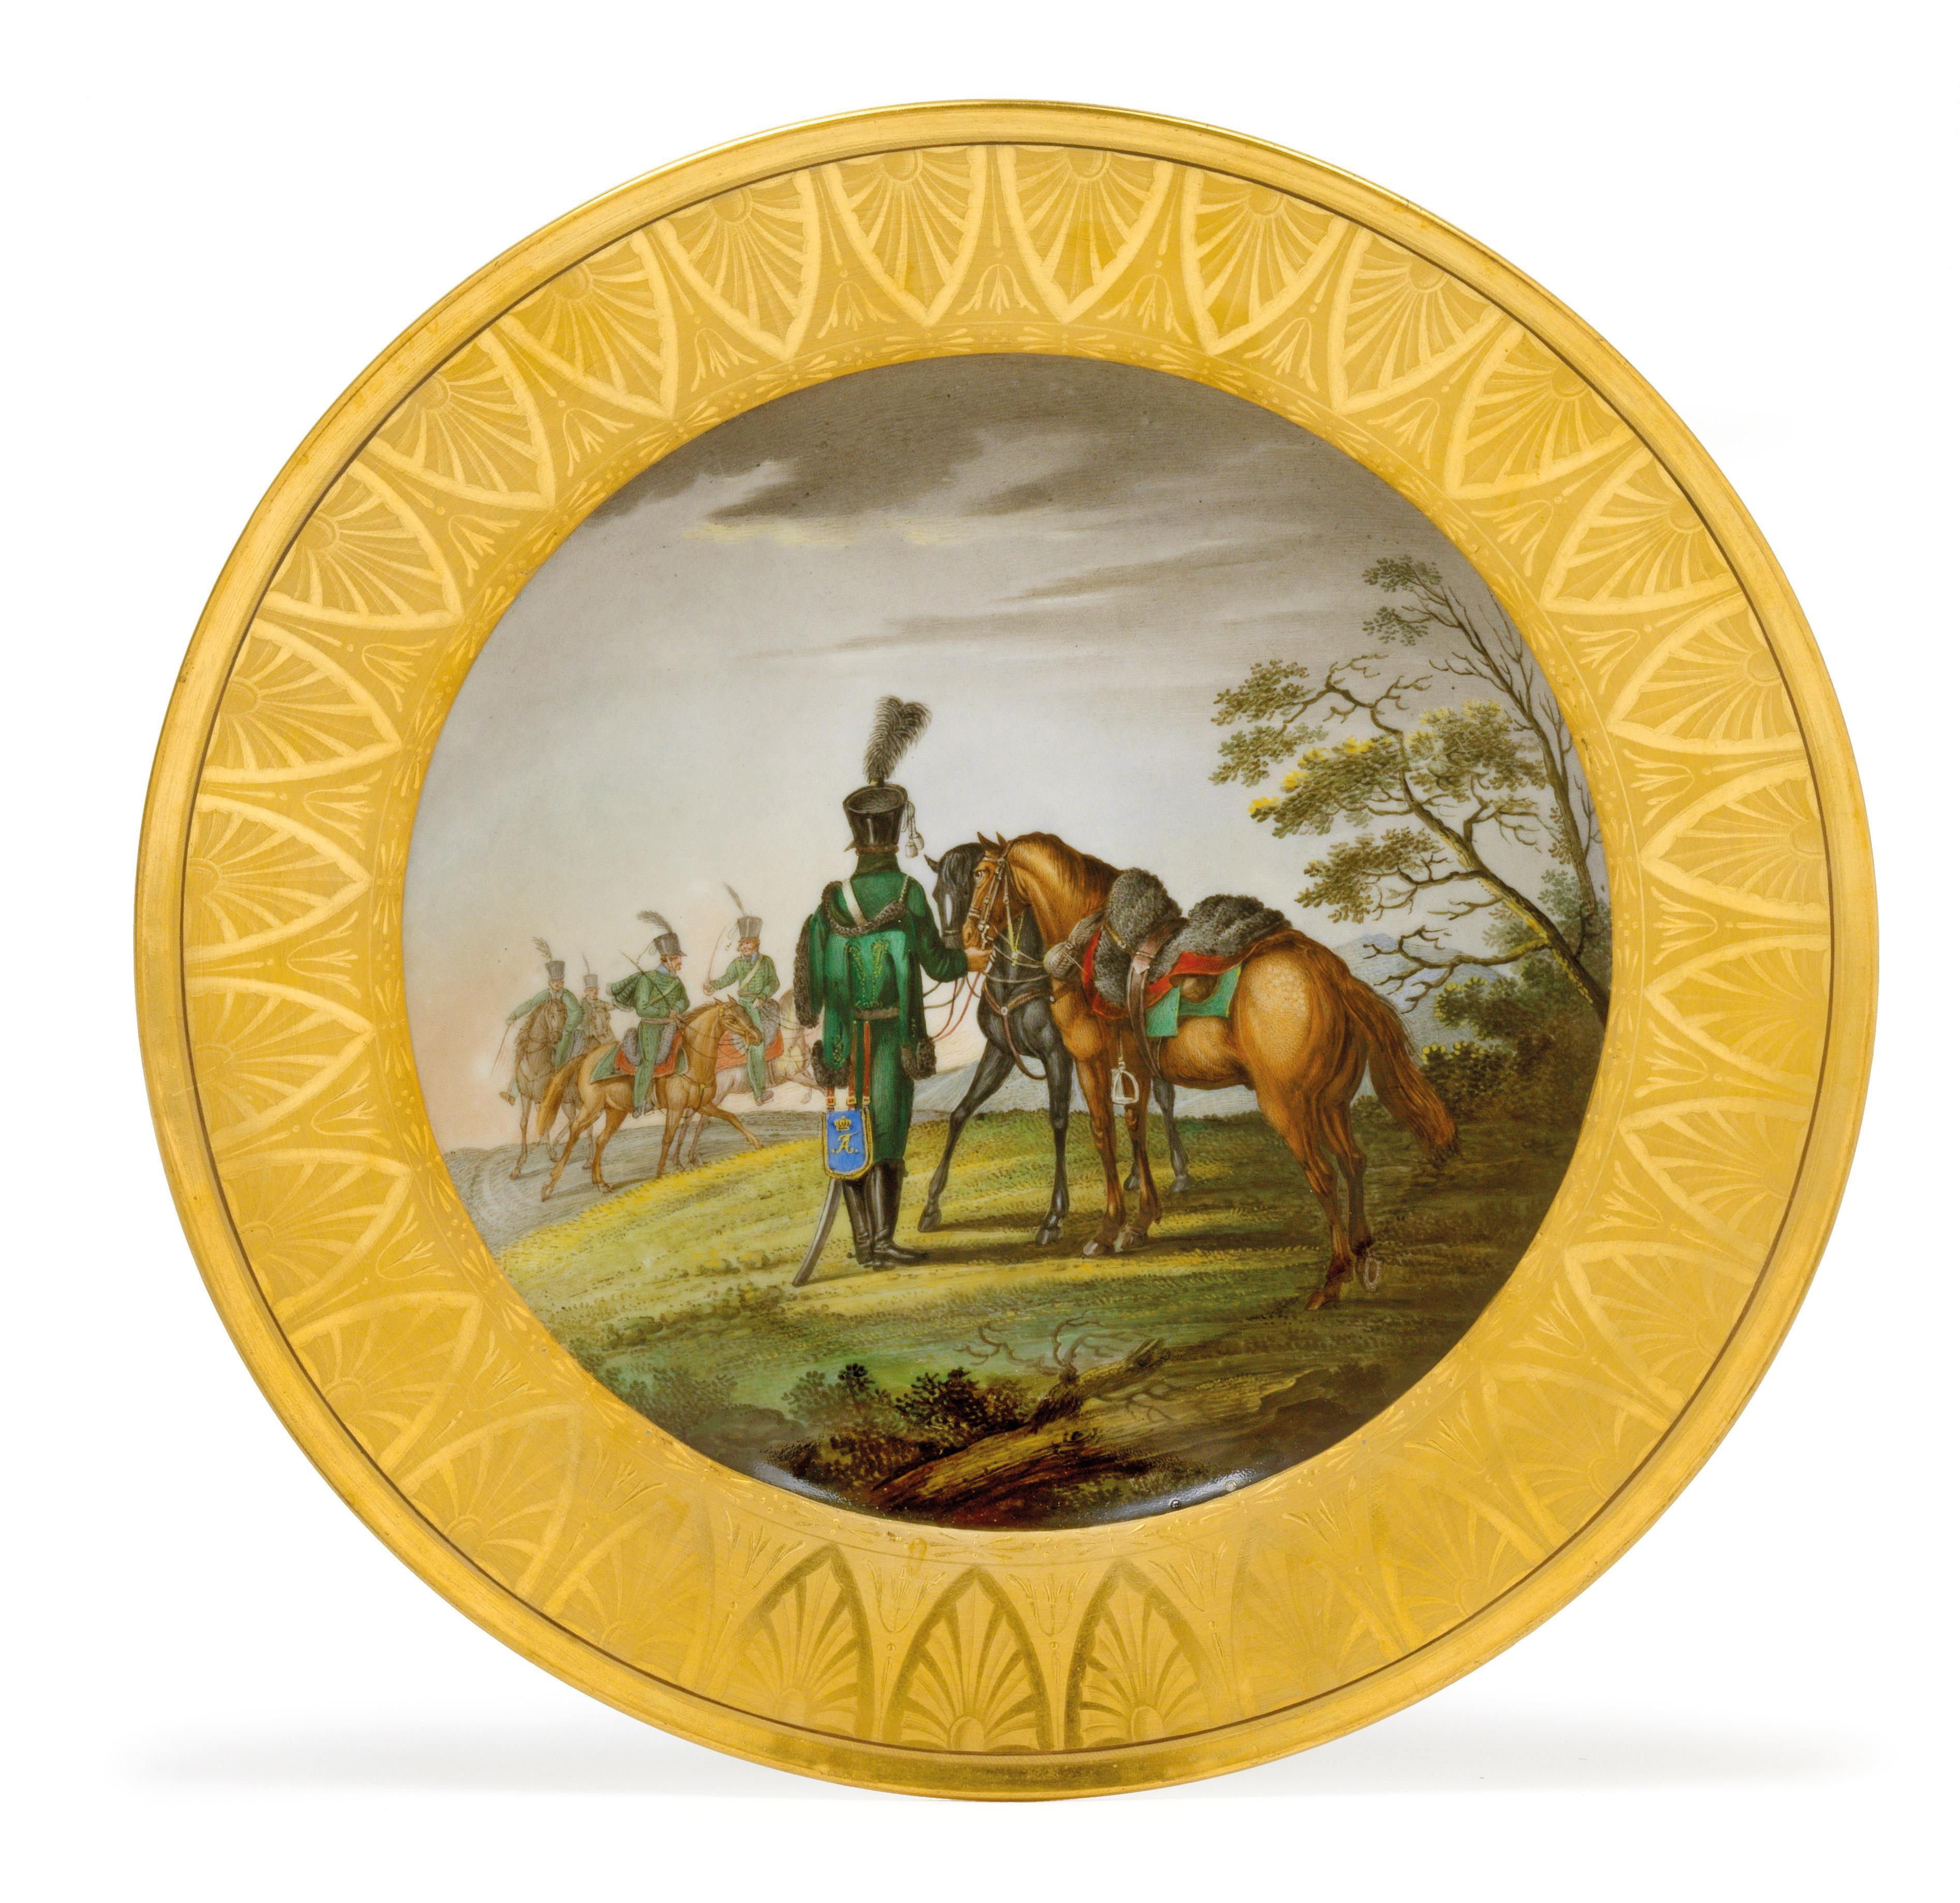 A Plate With Russian Mounted Soldiers In A Vast Landscape Glass And Porcelain 2017 12 13 Realized Price Eur 2 375 Dorotheum